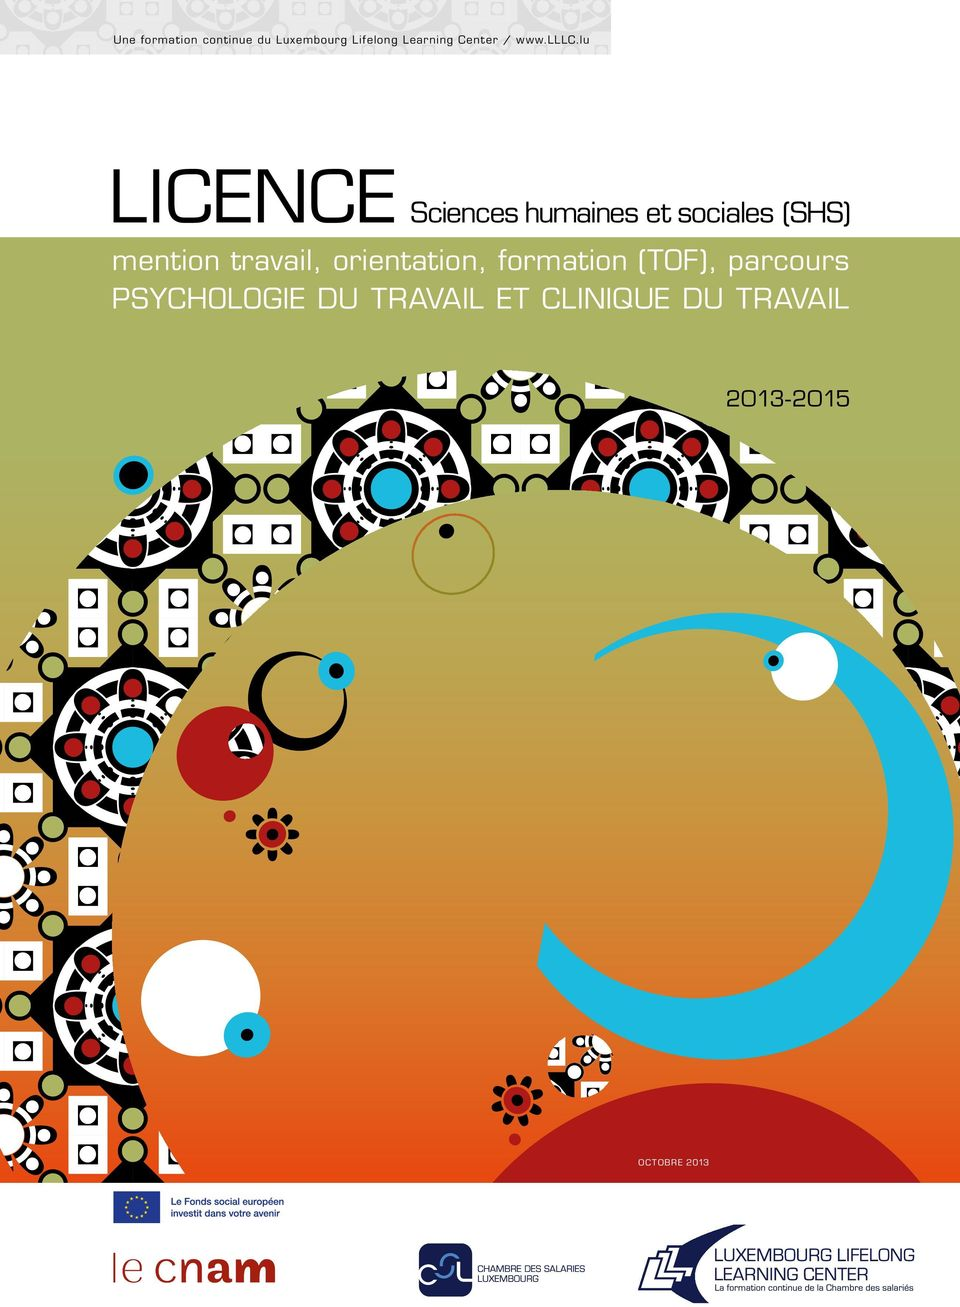 lu LICENCE Sciences humaines et sociales (SHS) mention